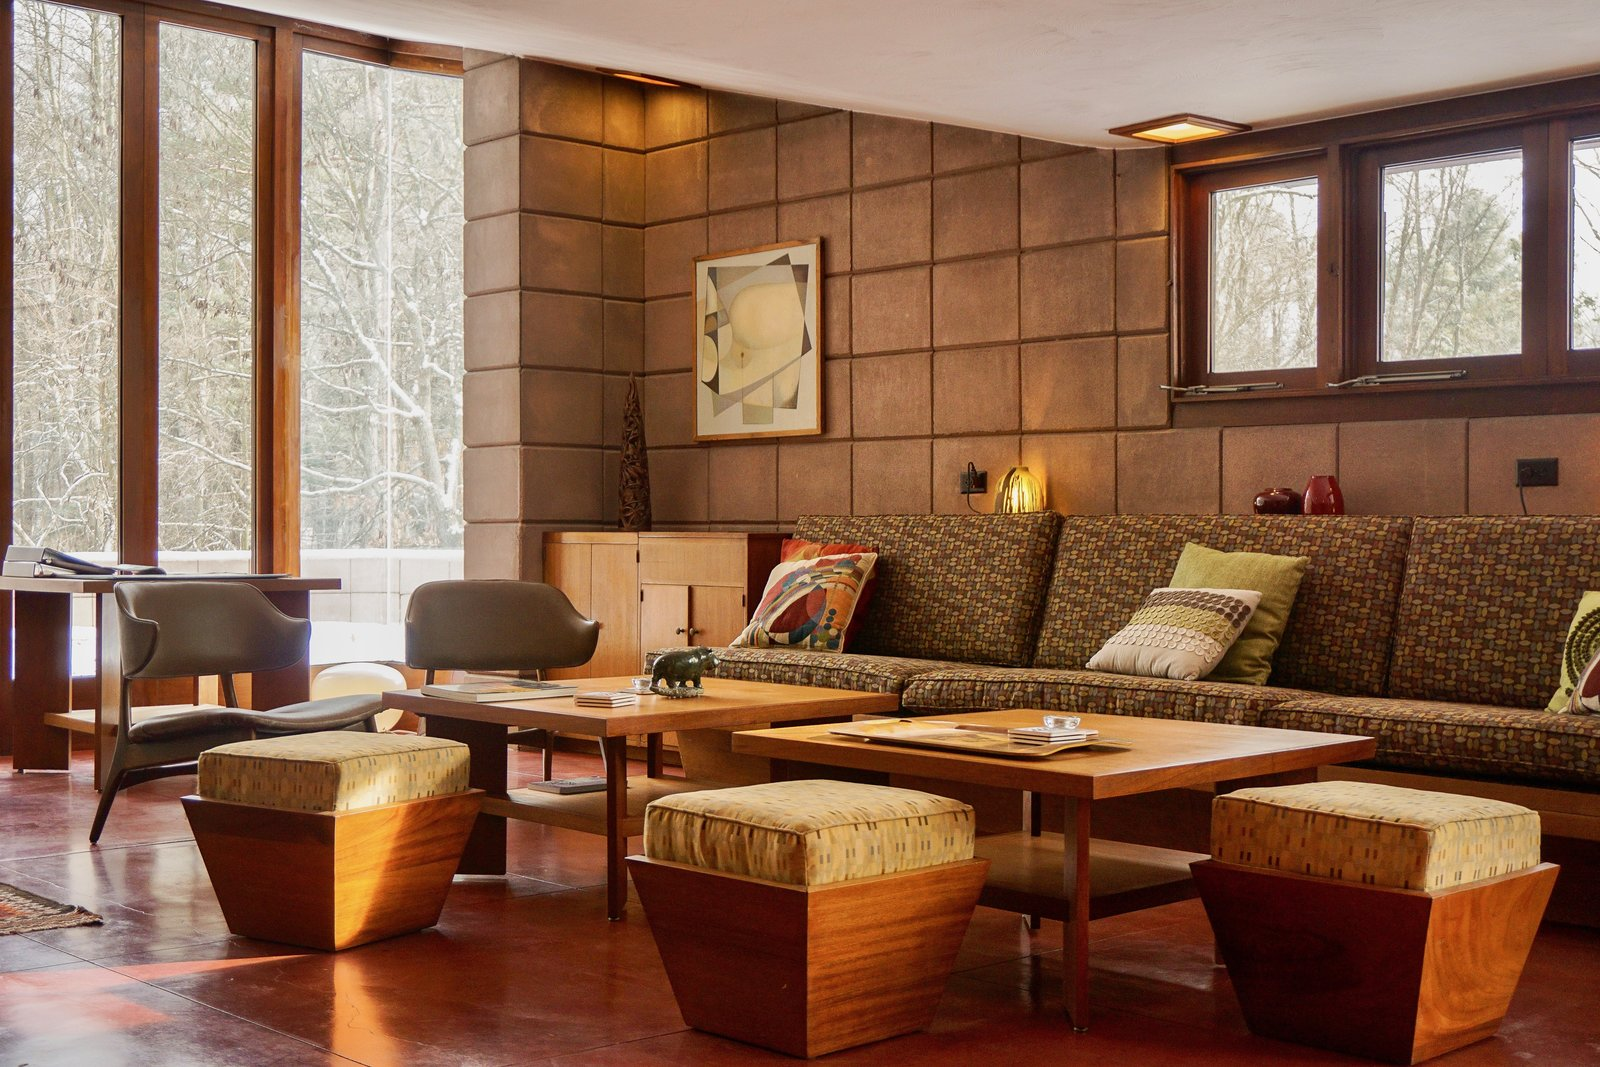 Living Room, Ottomans, Coffee Tables, Chair, Bench, Sofa, Ceiling Lighting, Concrete Floor, Storage, and Table Lighting  Frank Lloyd Wright's Eppstein House from You Can Now Rent Frank Lloyd Wright's Gloriously Restored Eppstein House